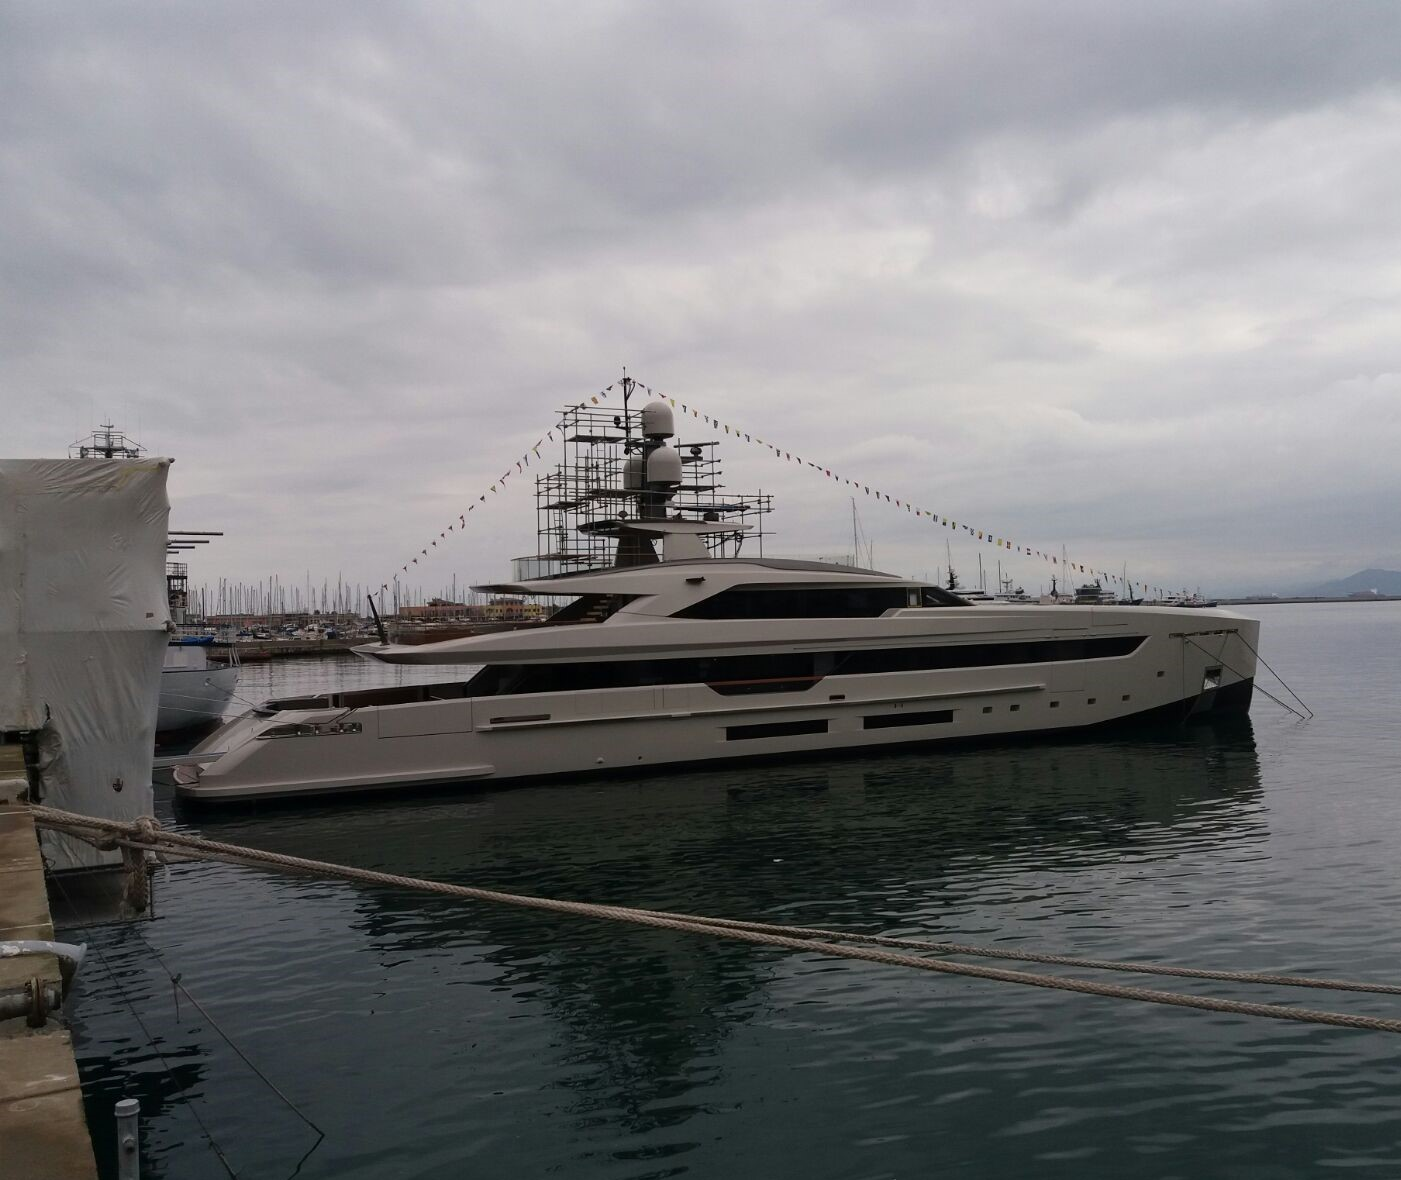 Work done on a 50 m Yacht